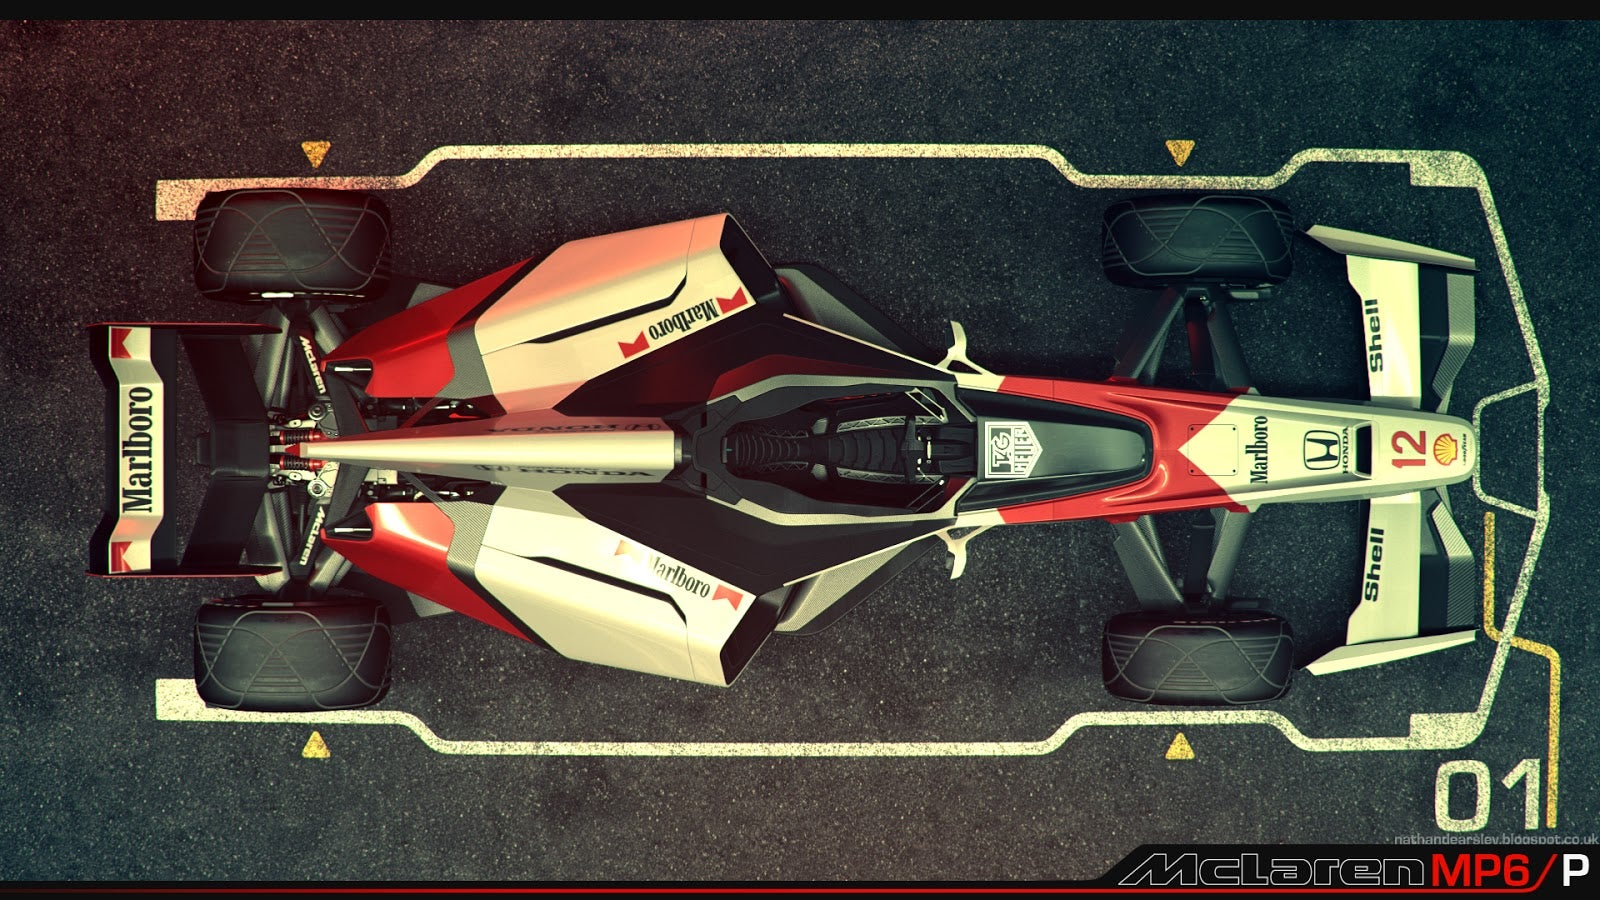 The Most Beautiful Race Car In The World (Of Tomorrow)